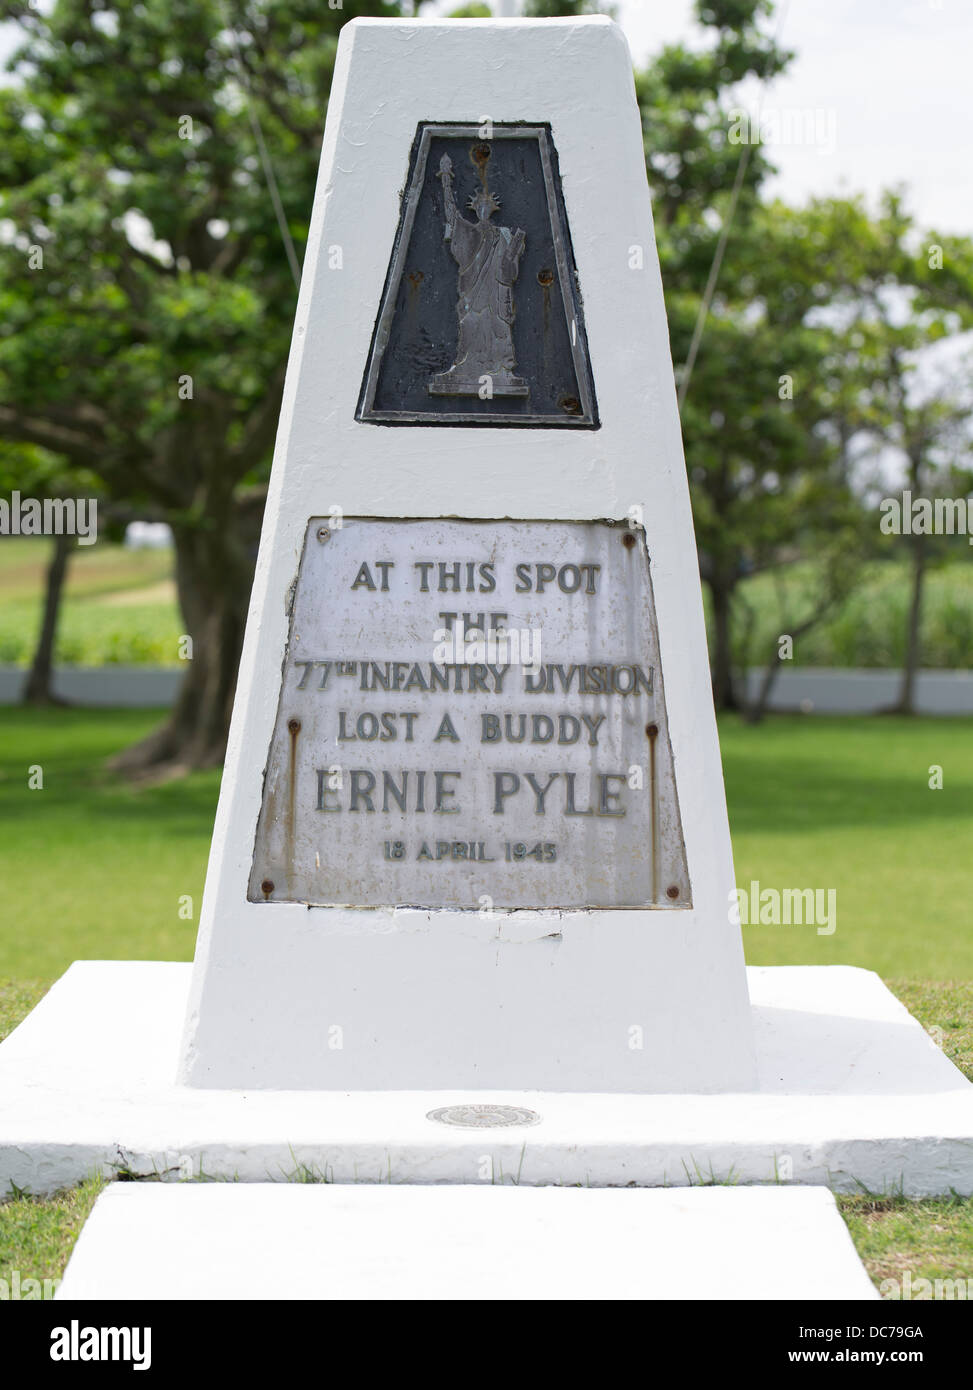 Ernie Pyle Monument, to US war correspondent killed on Ie Island Okinawa 18/4/1945 - Stock Image